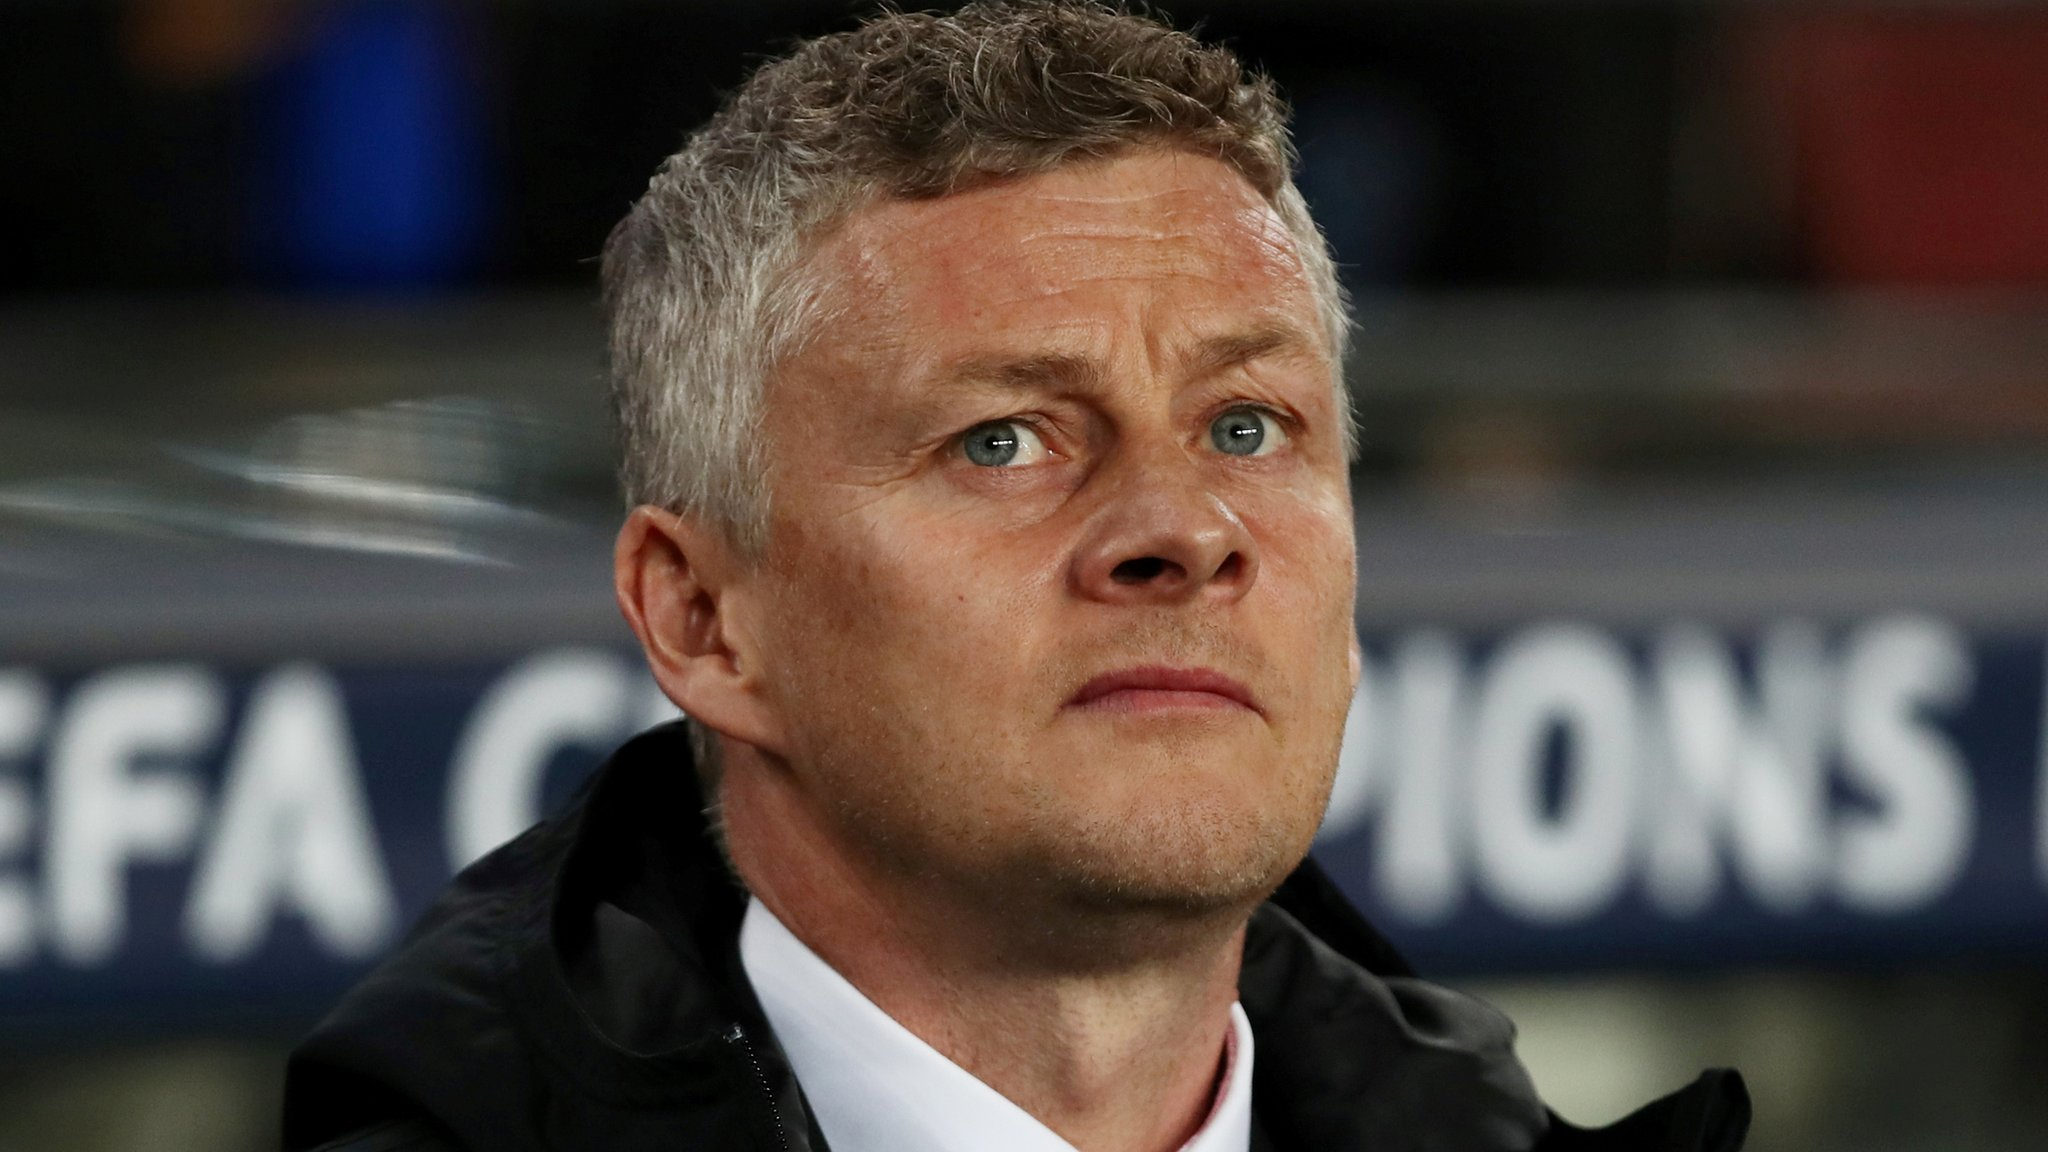 Solskjaer was the wrong choice as Man Utd boss - Jenas